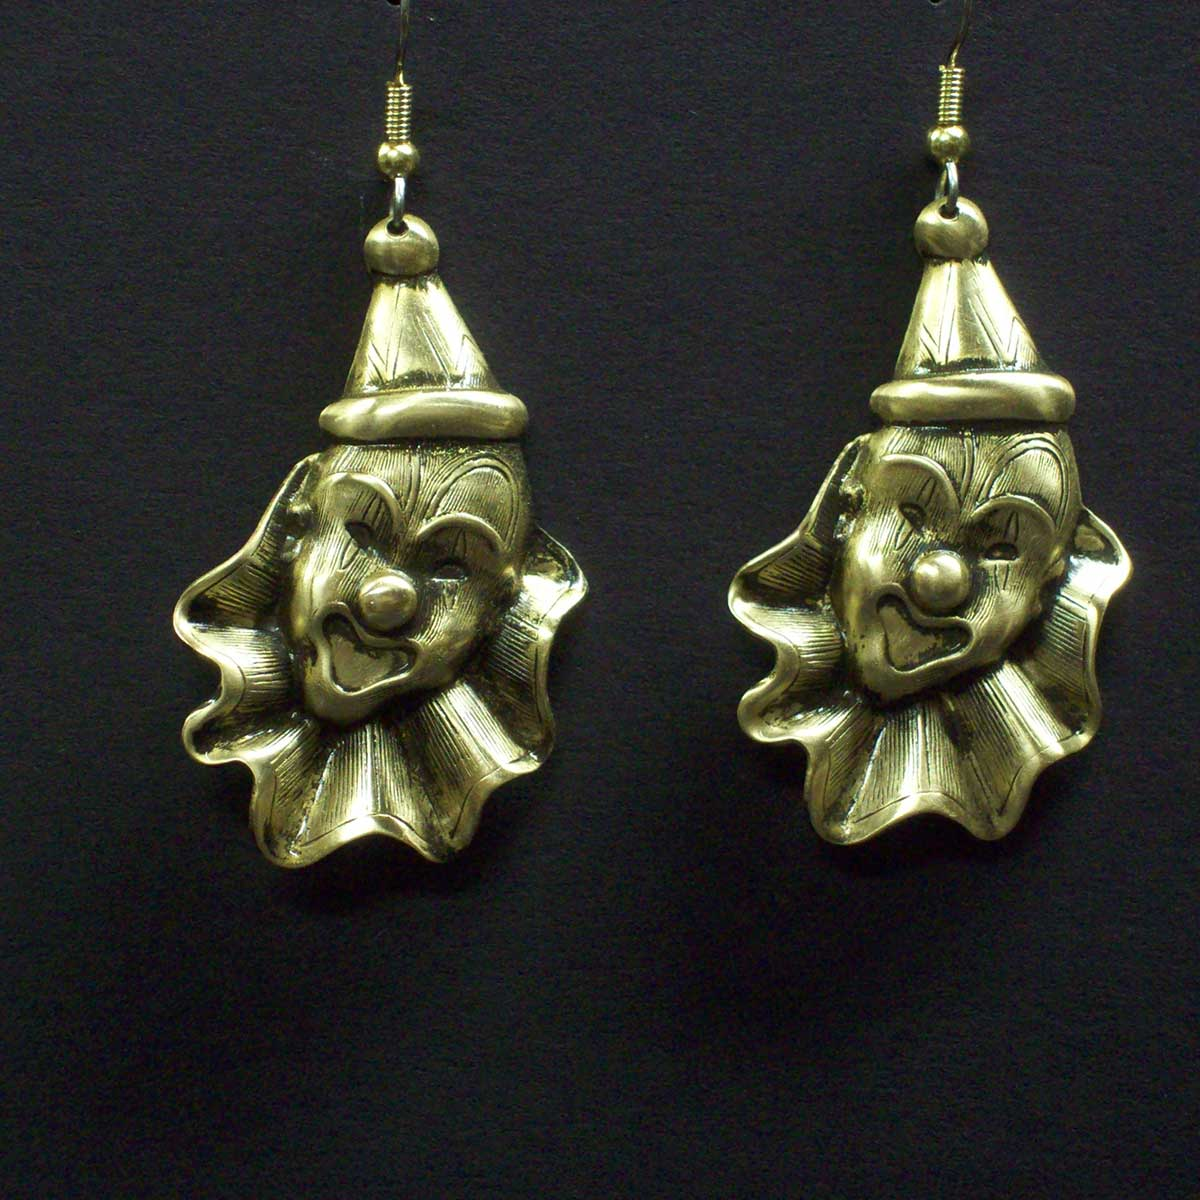 Large Clown Head Earrings